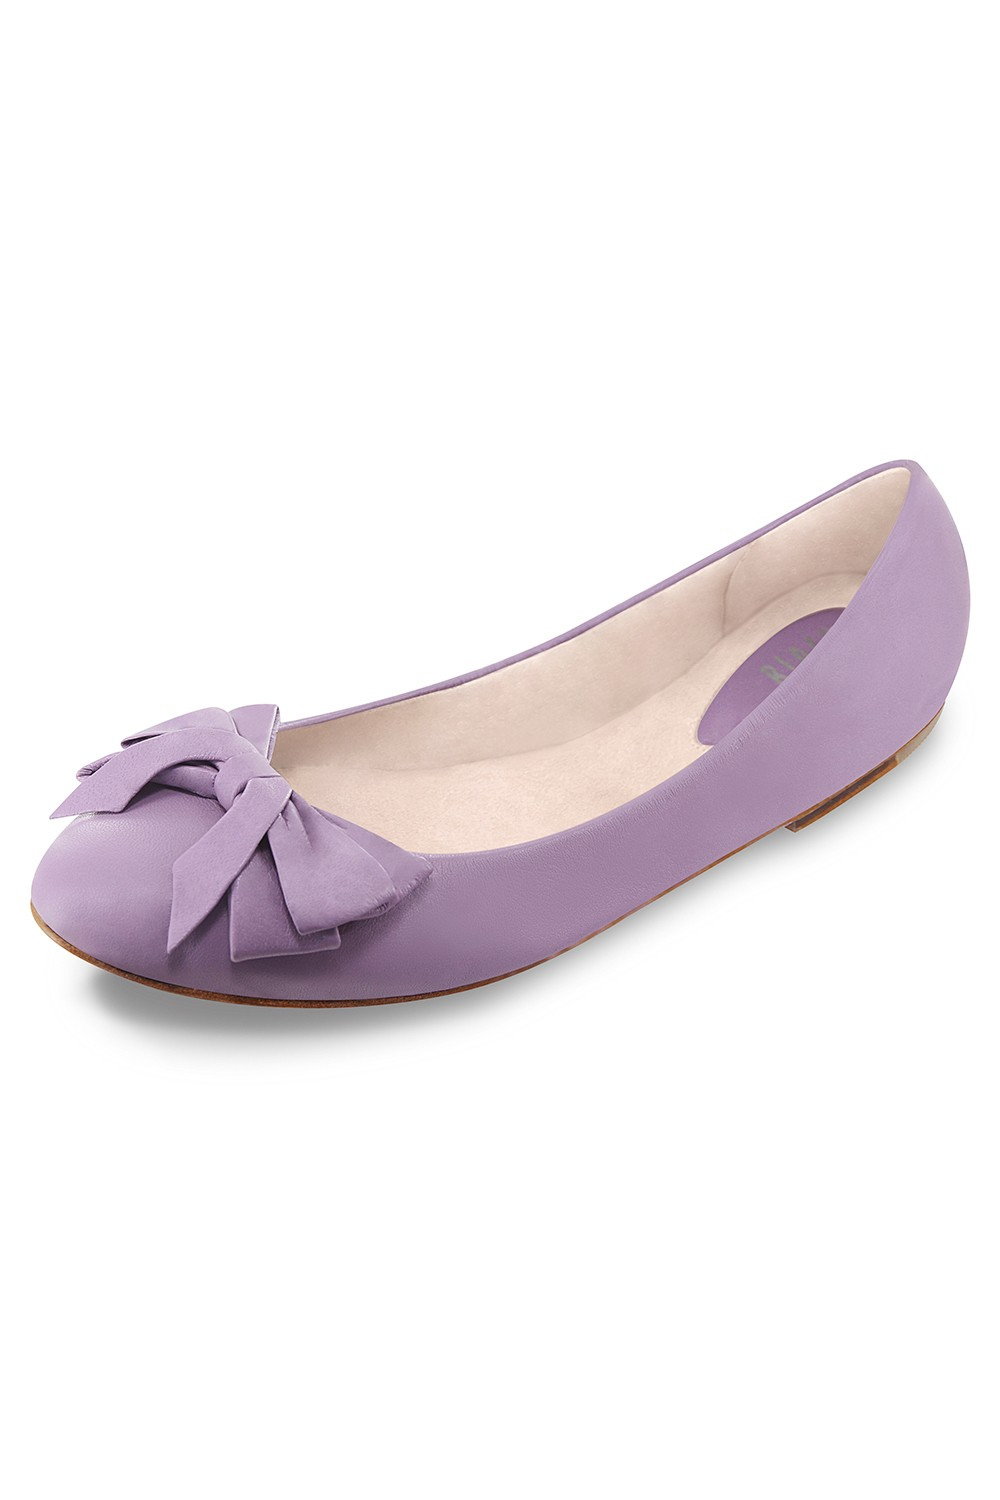 Ayva Ballet Flat Womens Fashion Shoes